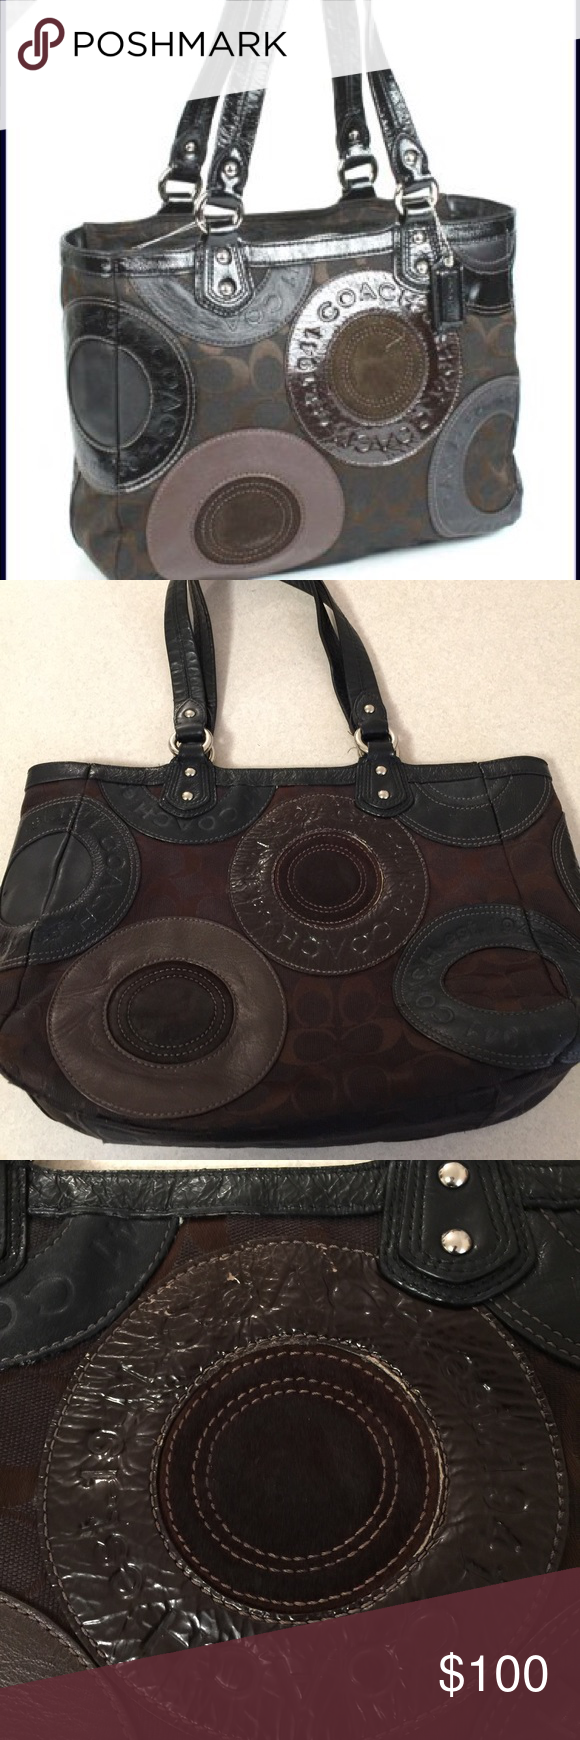 Coach Purse Slightly Used Authentic Coach Bag Purchased At Coach